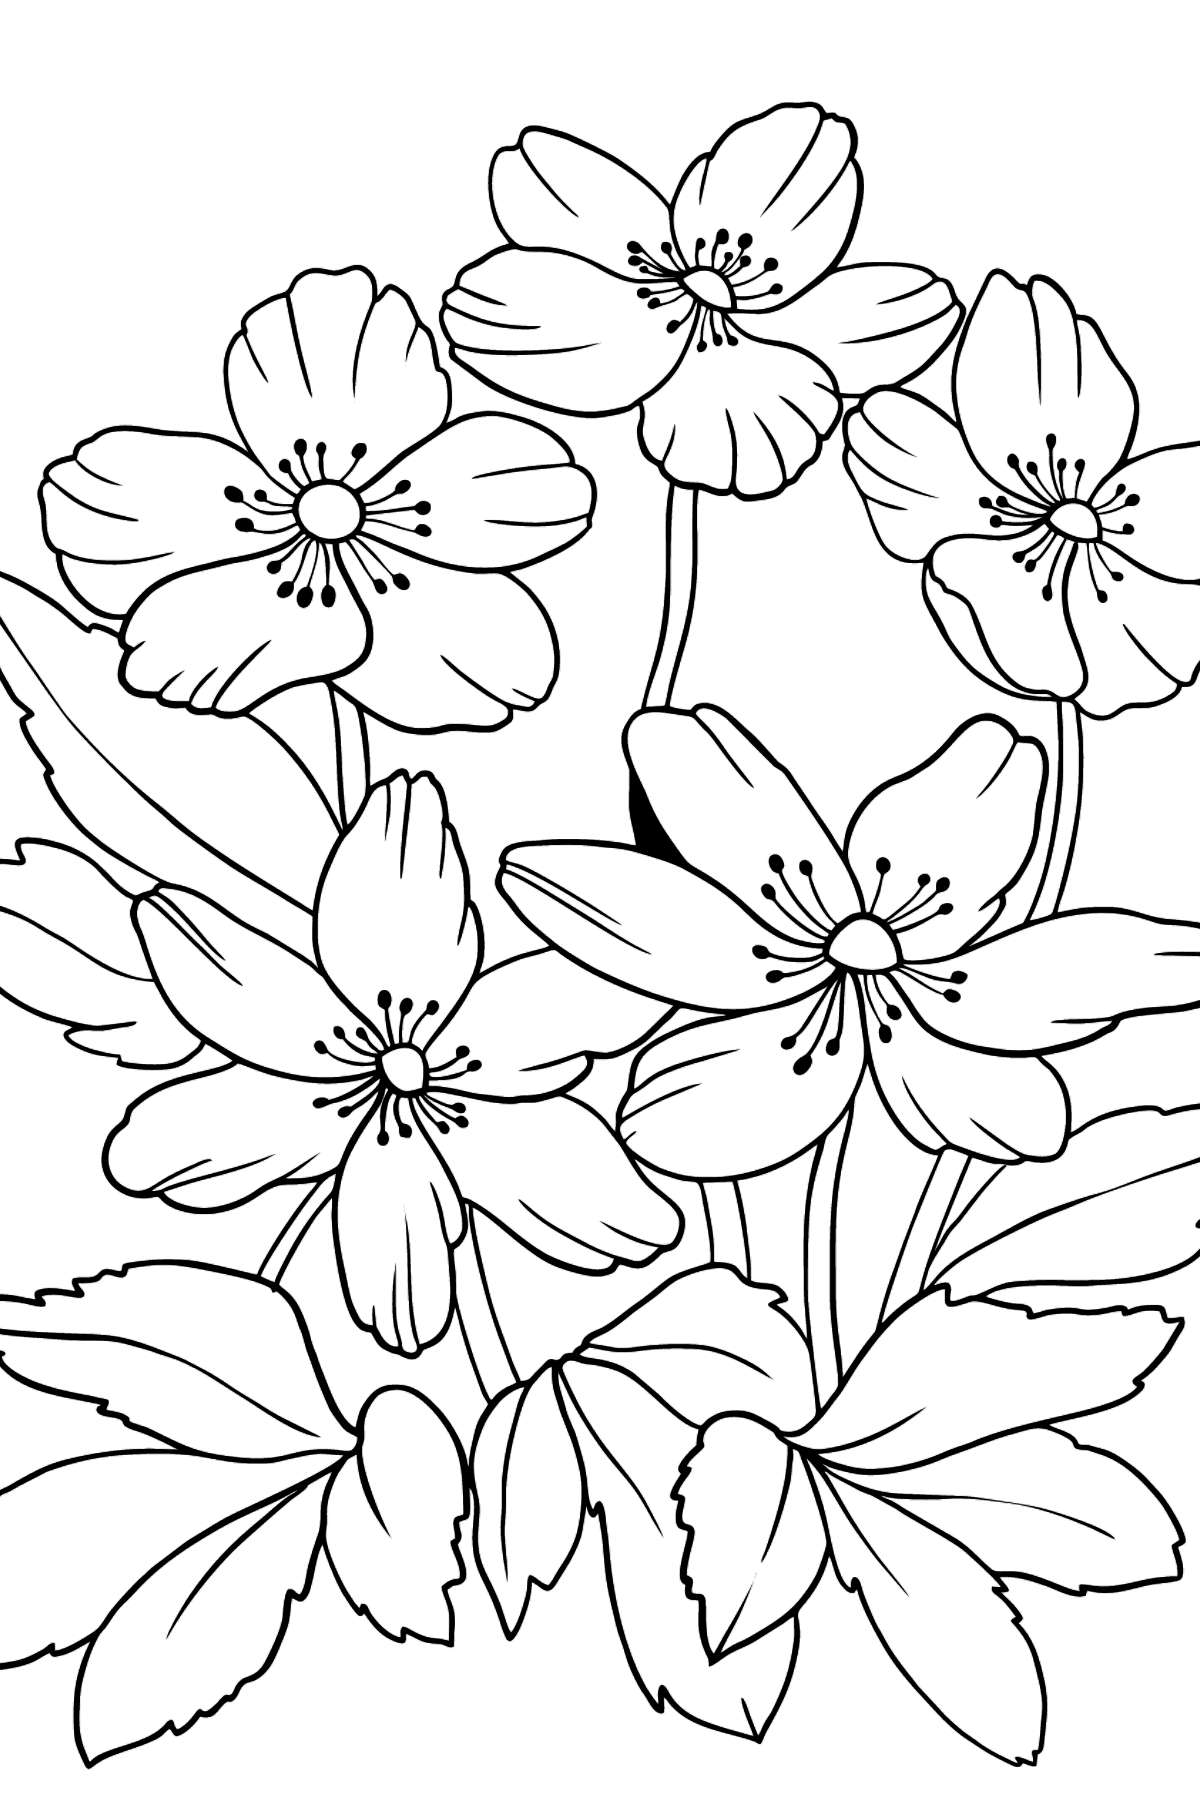 Flower Coloring Page - A Pastel Yellow Windflower - Coloring Pages for Kids